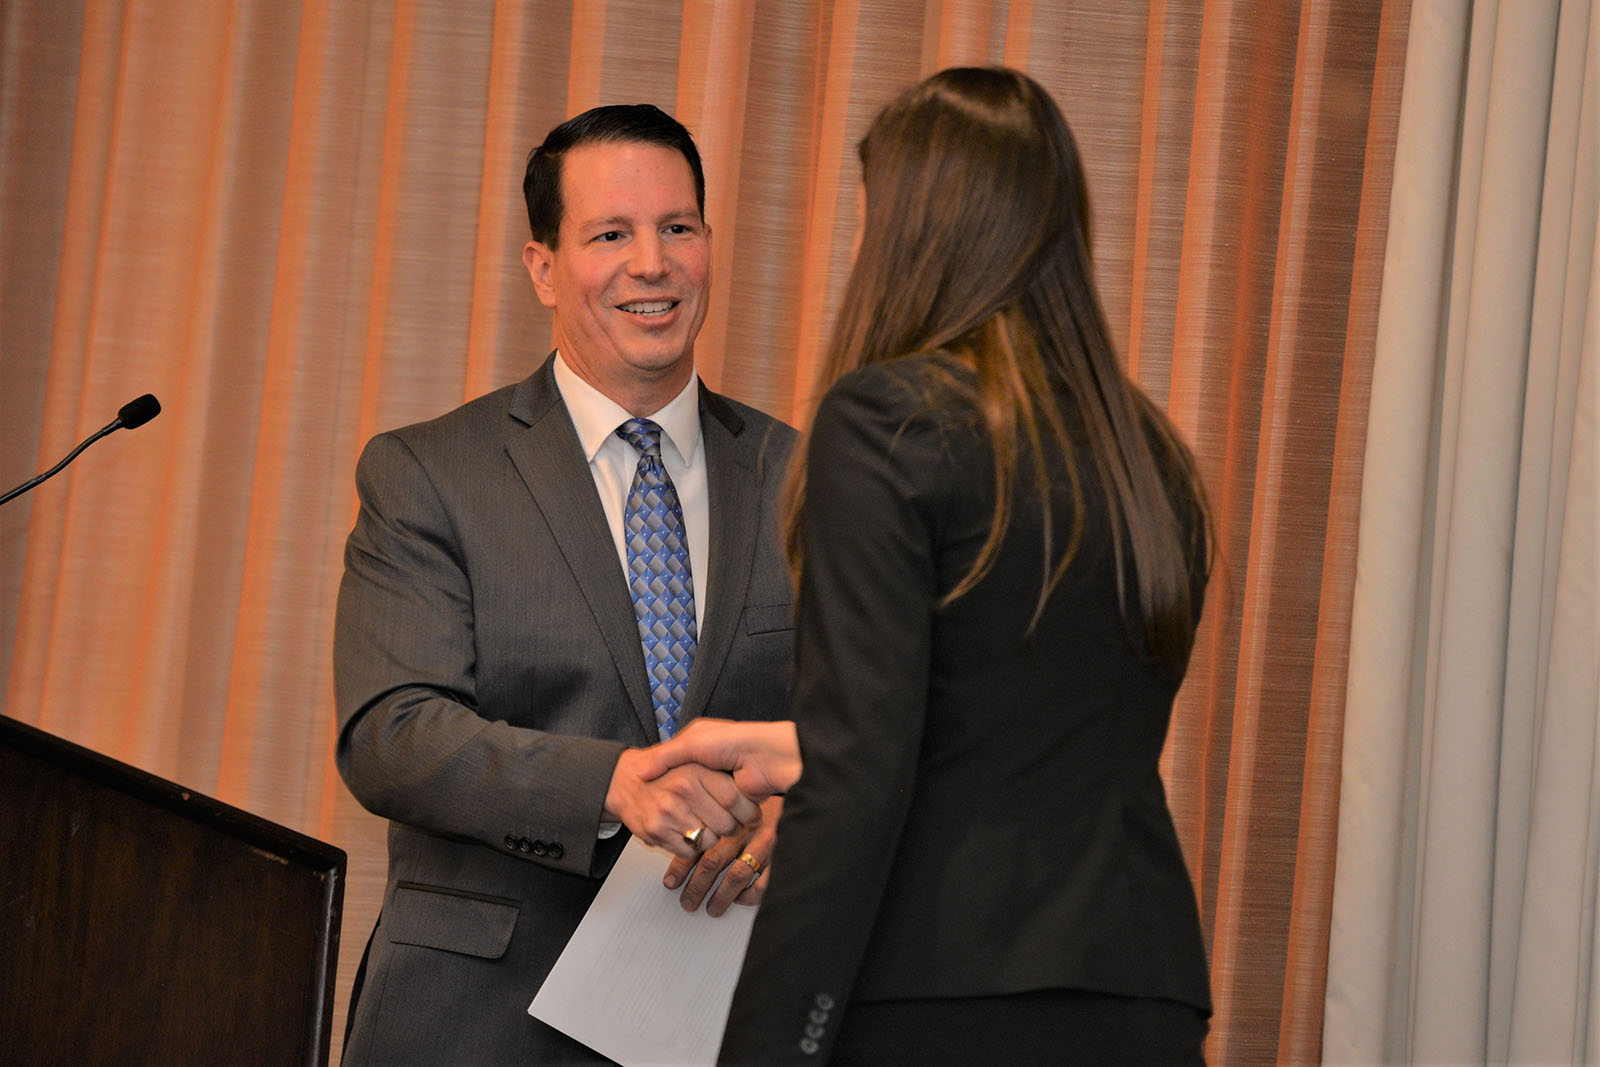 Marketing Associate Professor Rich Rocco hands award to student at Beta Gamma Sigma induction dinner and ceremony